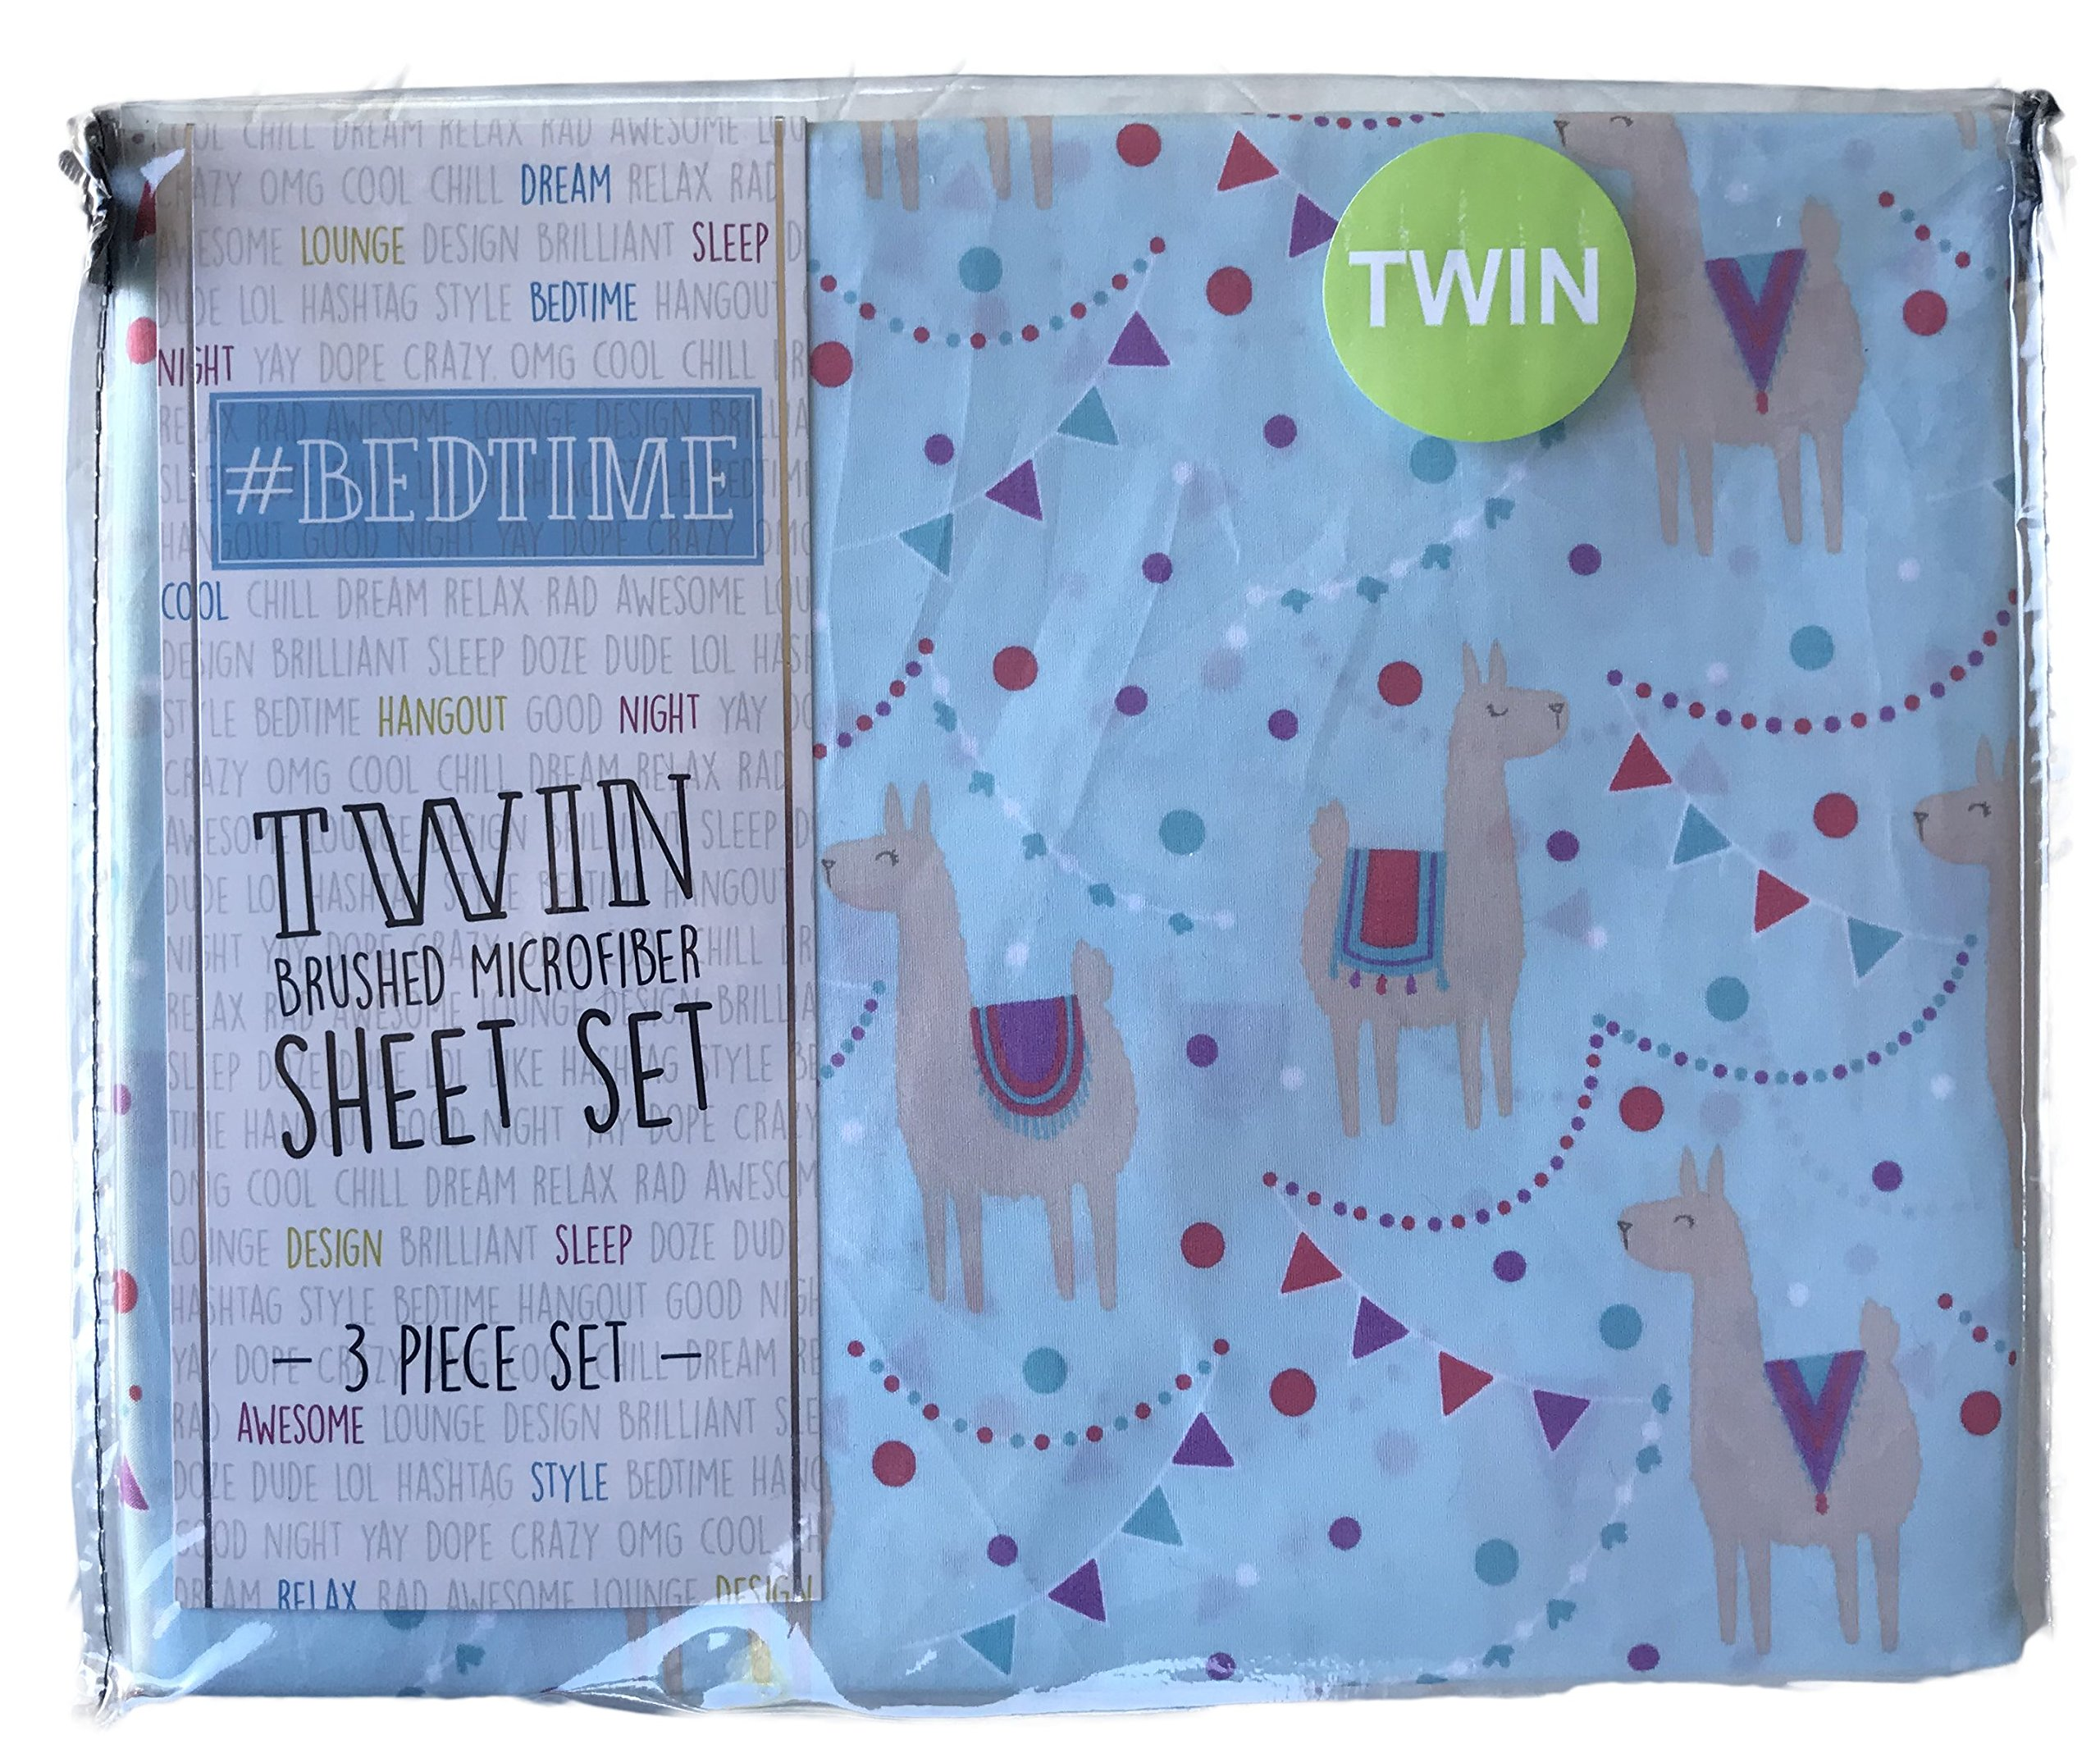 #Bedtime Festive Party Llamas 3 Piece Twin Novelty Sheet Set by Bed time (Image #1)